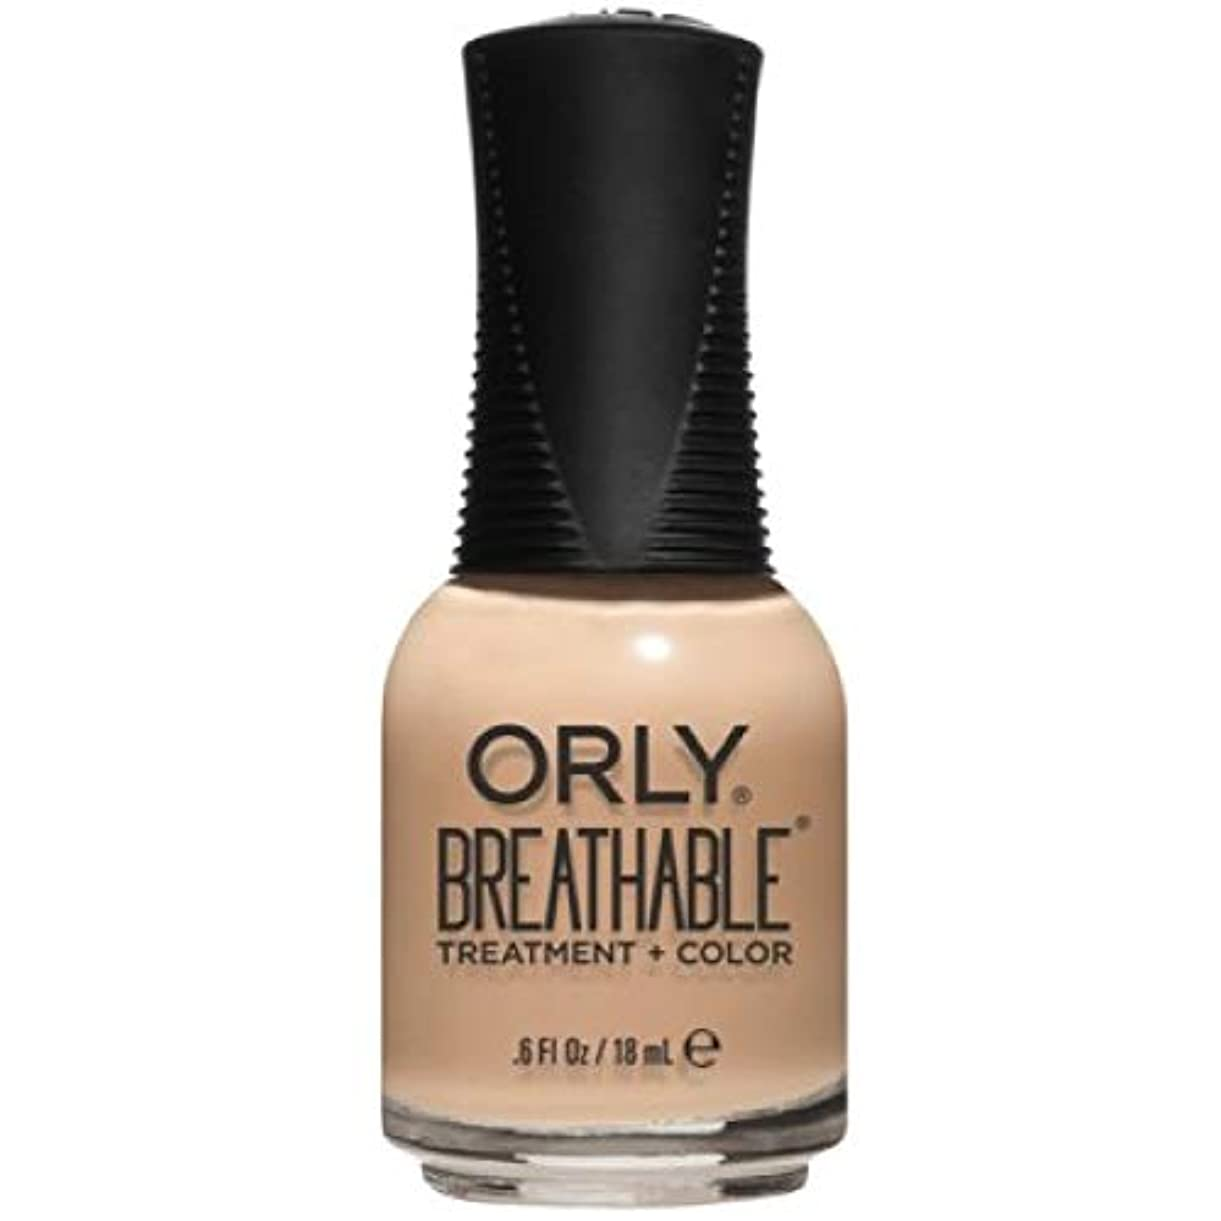 脊椎知覚できる預言者Orly Breathable Nail Lacquer - Treatment + Color - Mind, Body, Spirit - 0.6 oz / 18 mL